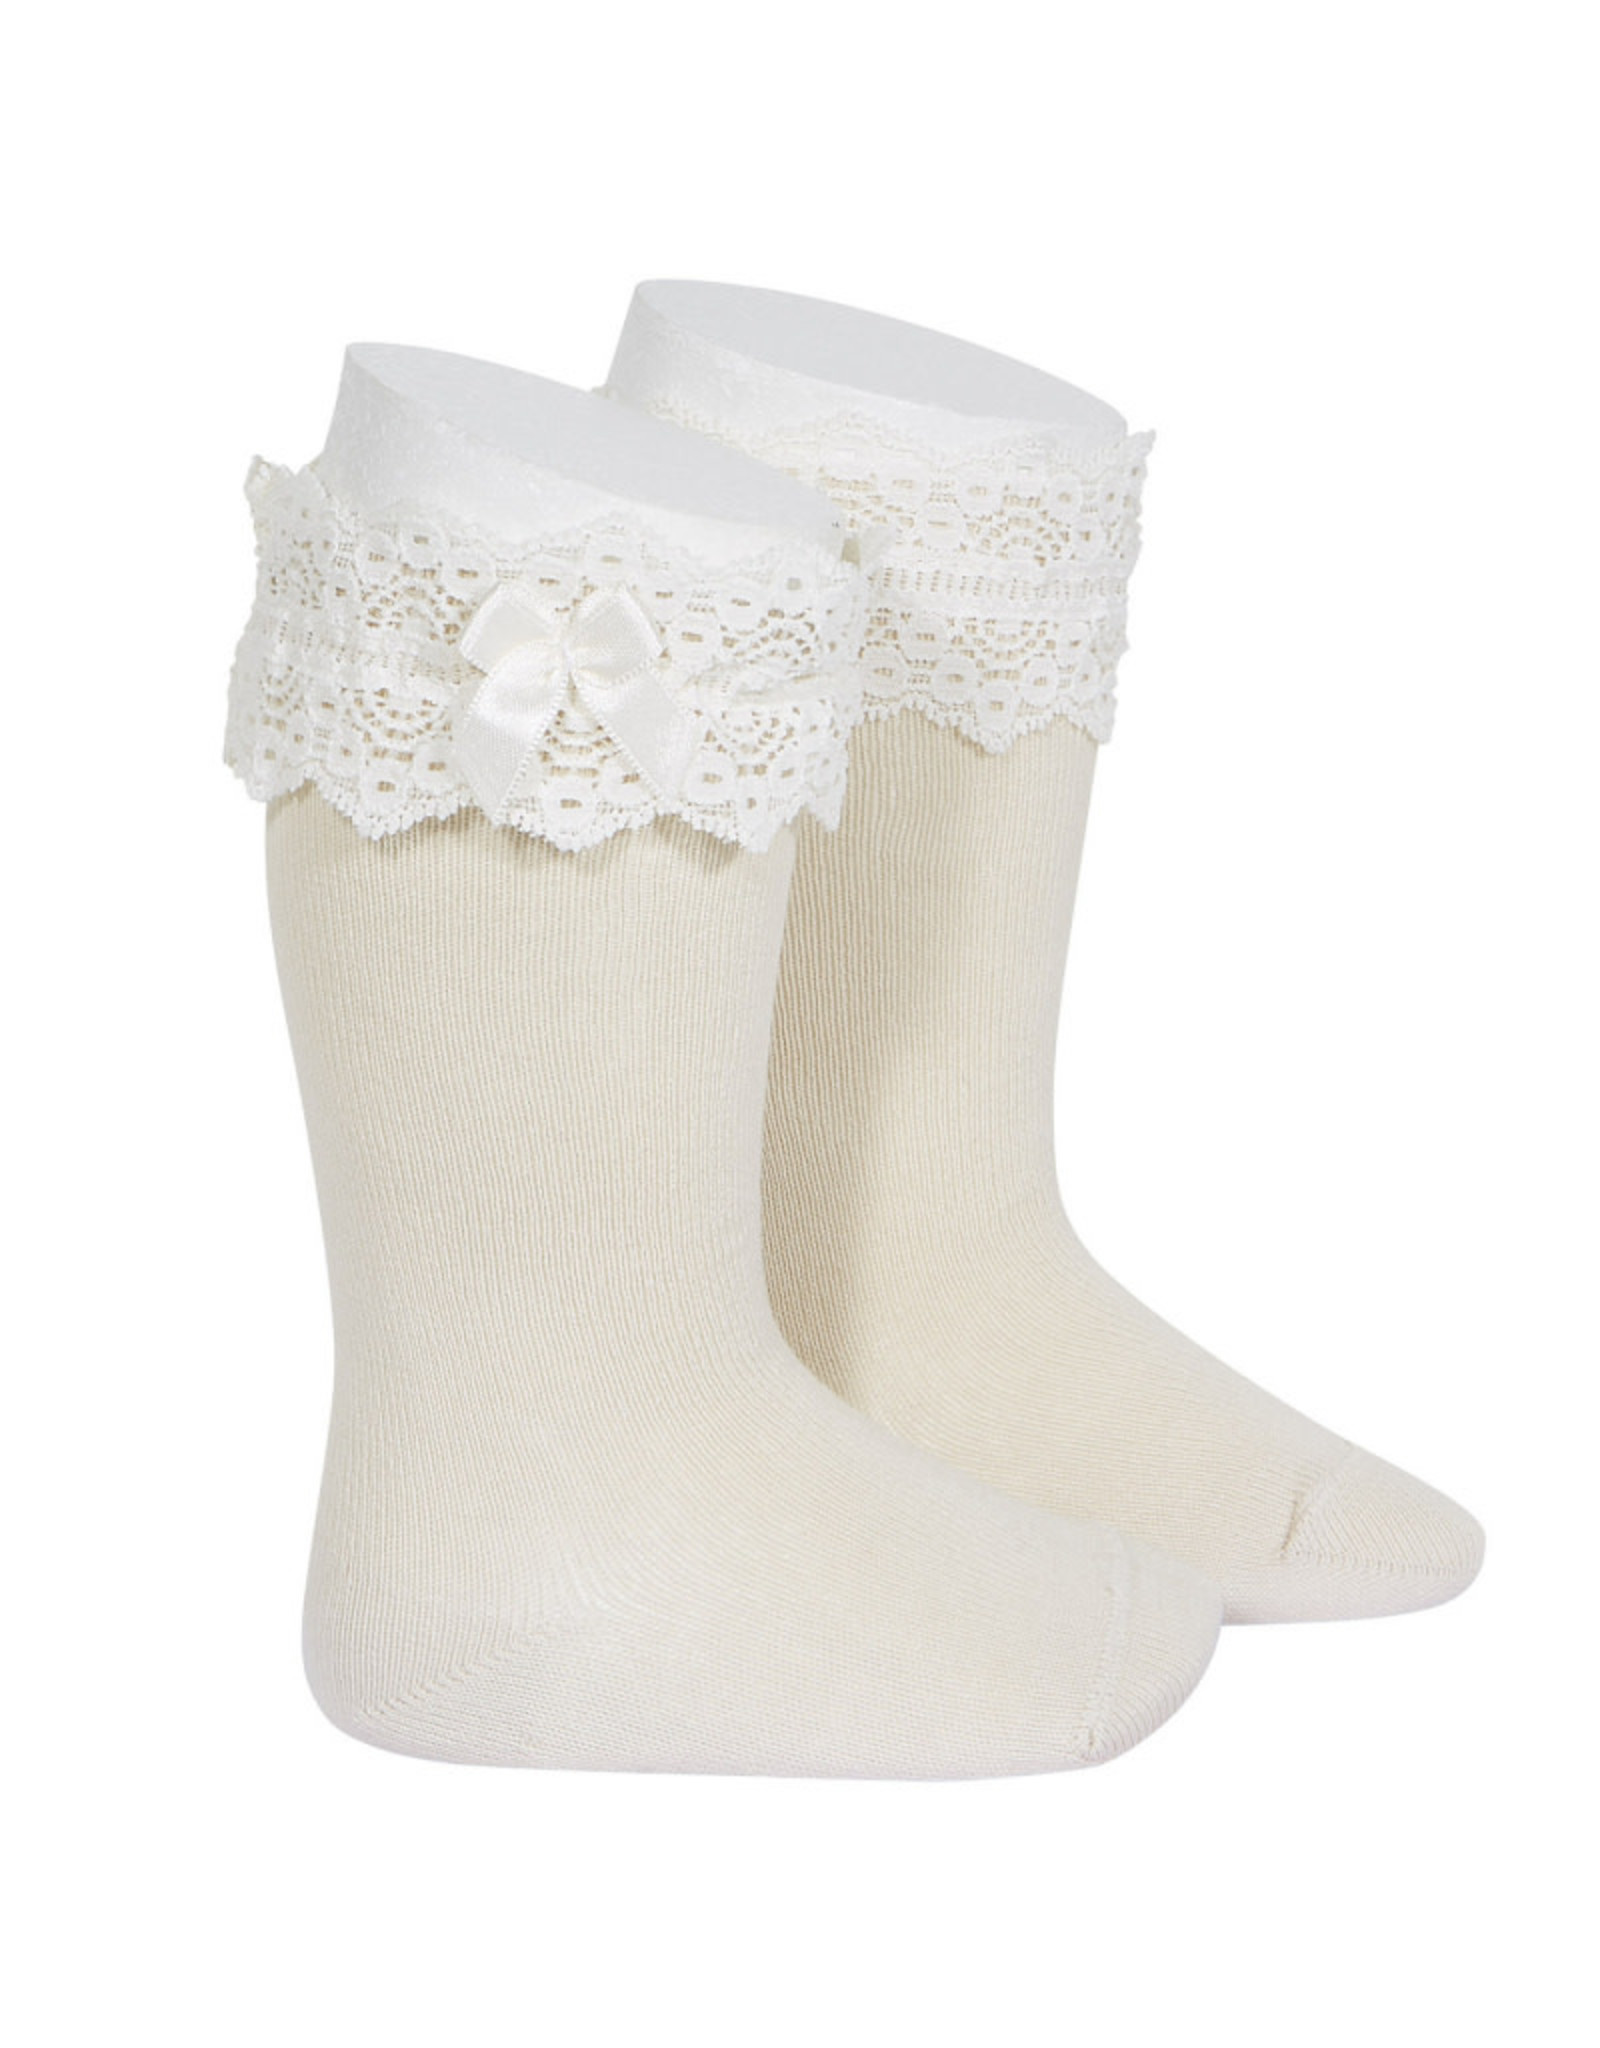 CONDOR Linen Lace Trim Socks with Bow